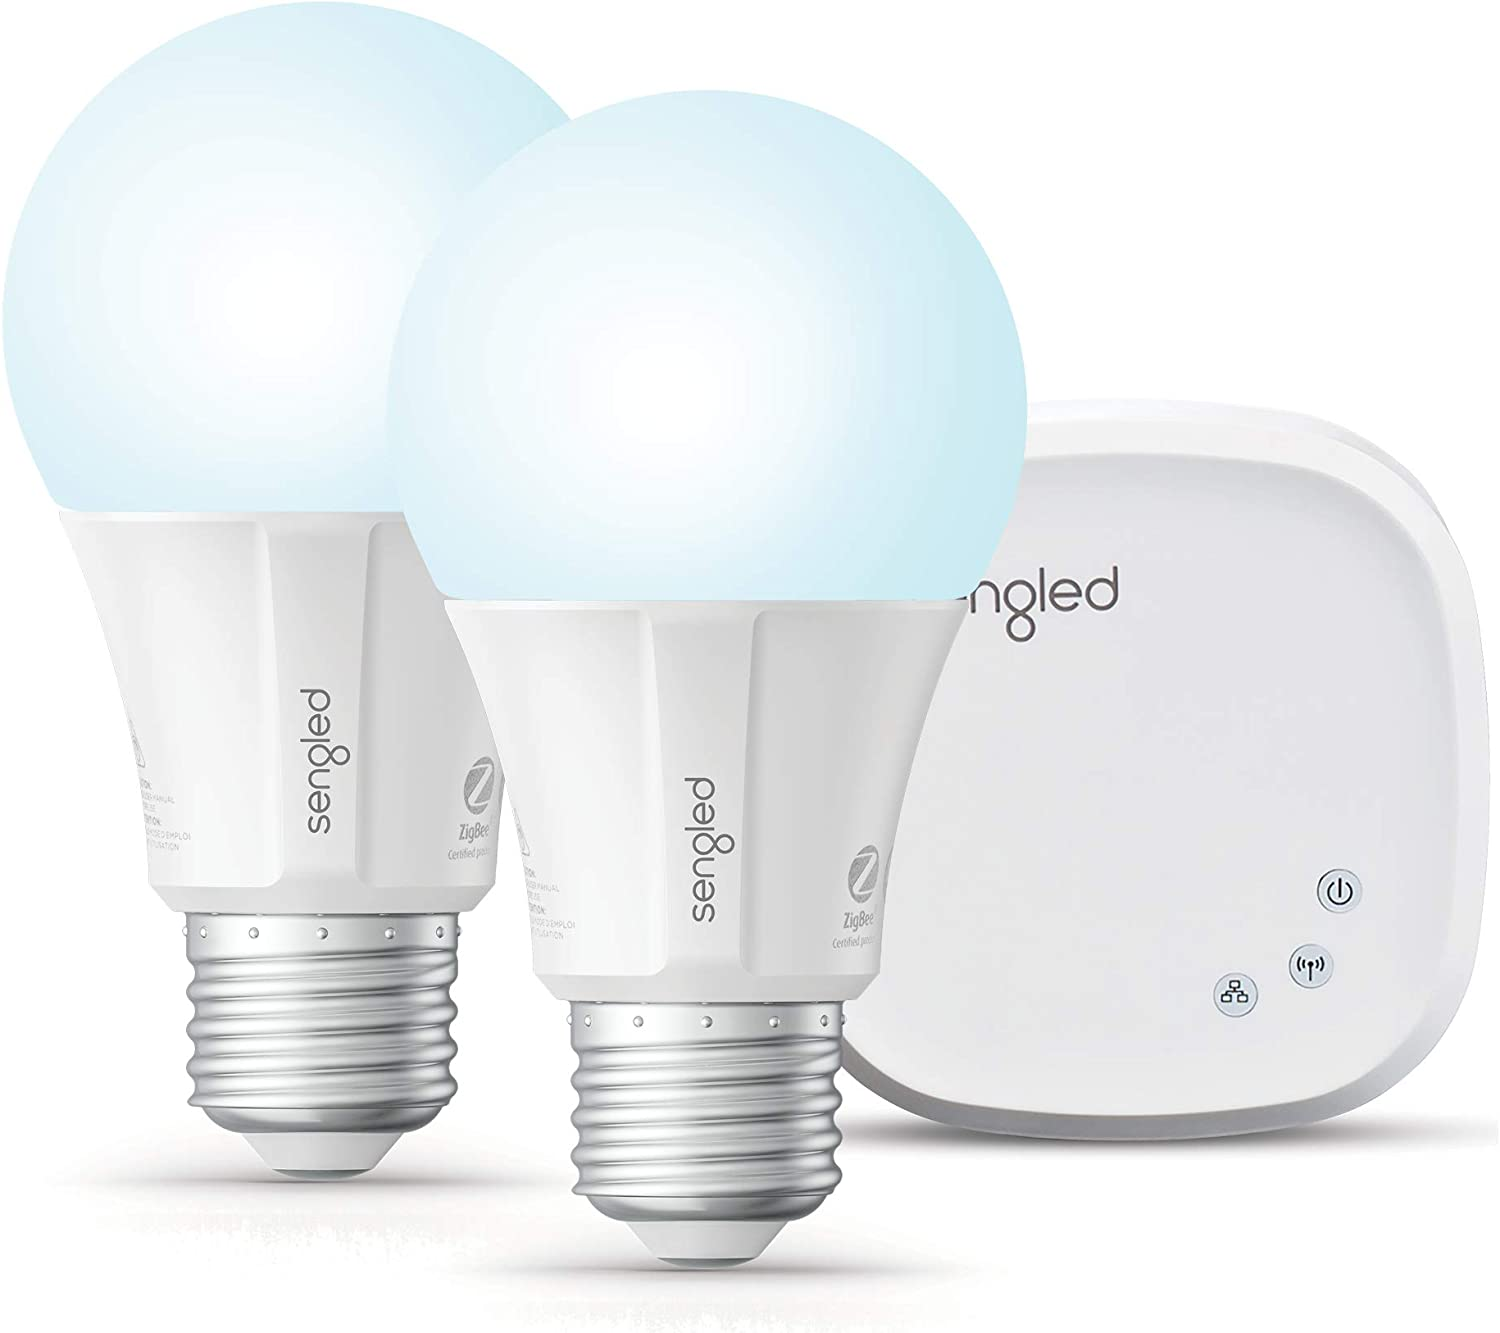 Sengled Smart LED Daylight A19 Bulb 1 Pack 5000K 60W Equivalent Compatible with Alexa Hub Required Google Assistant /& SmartThings